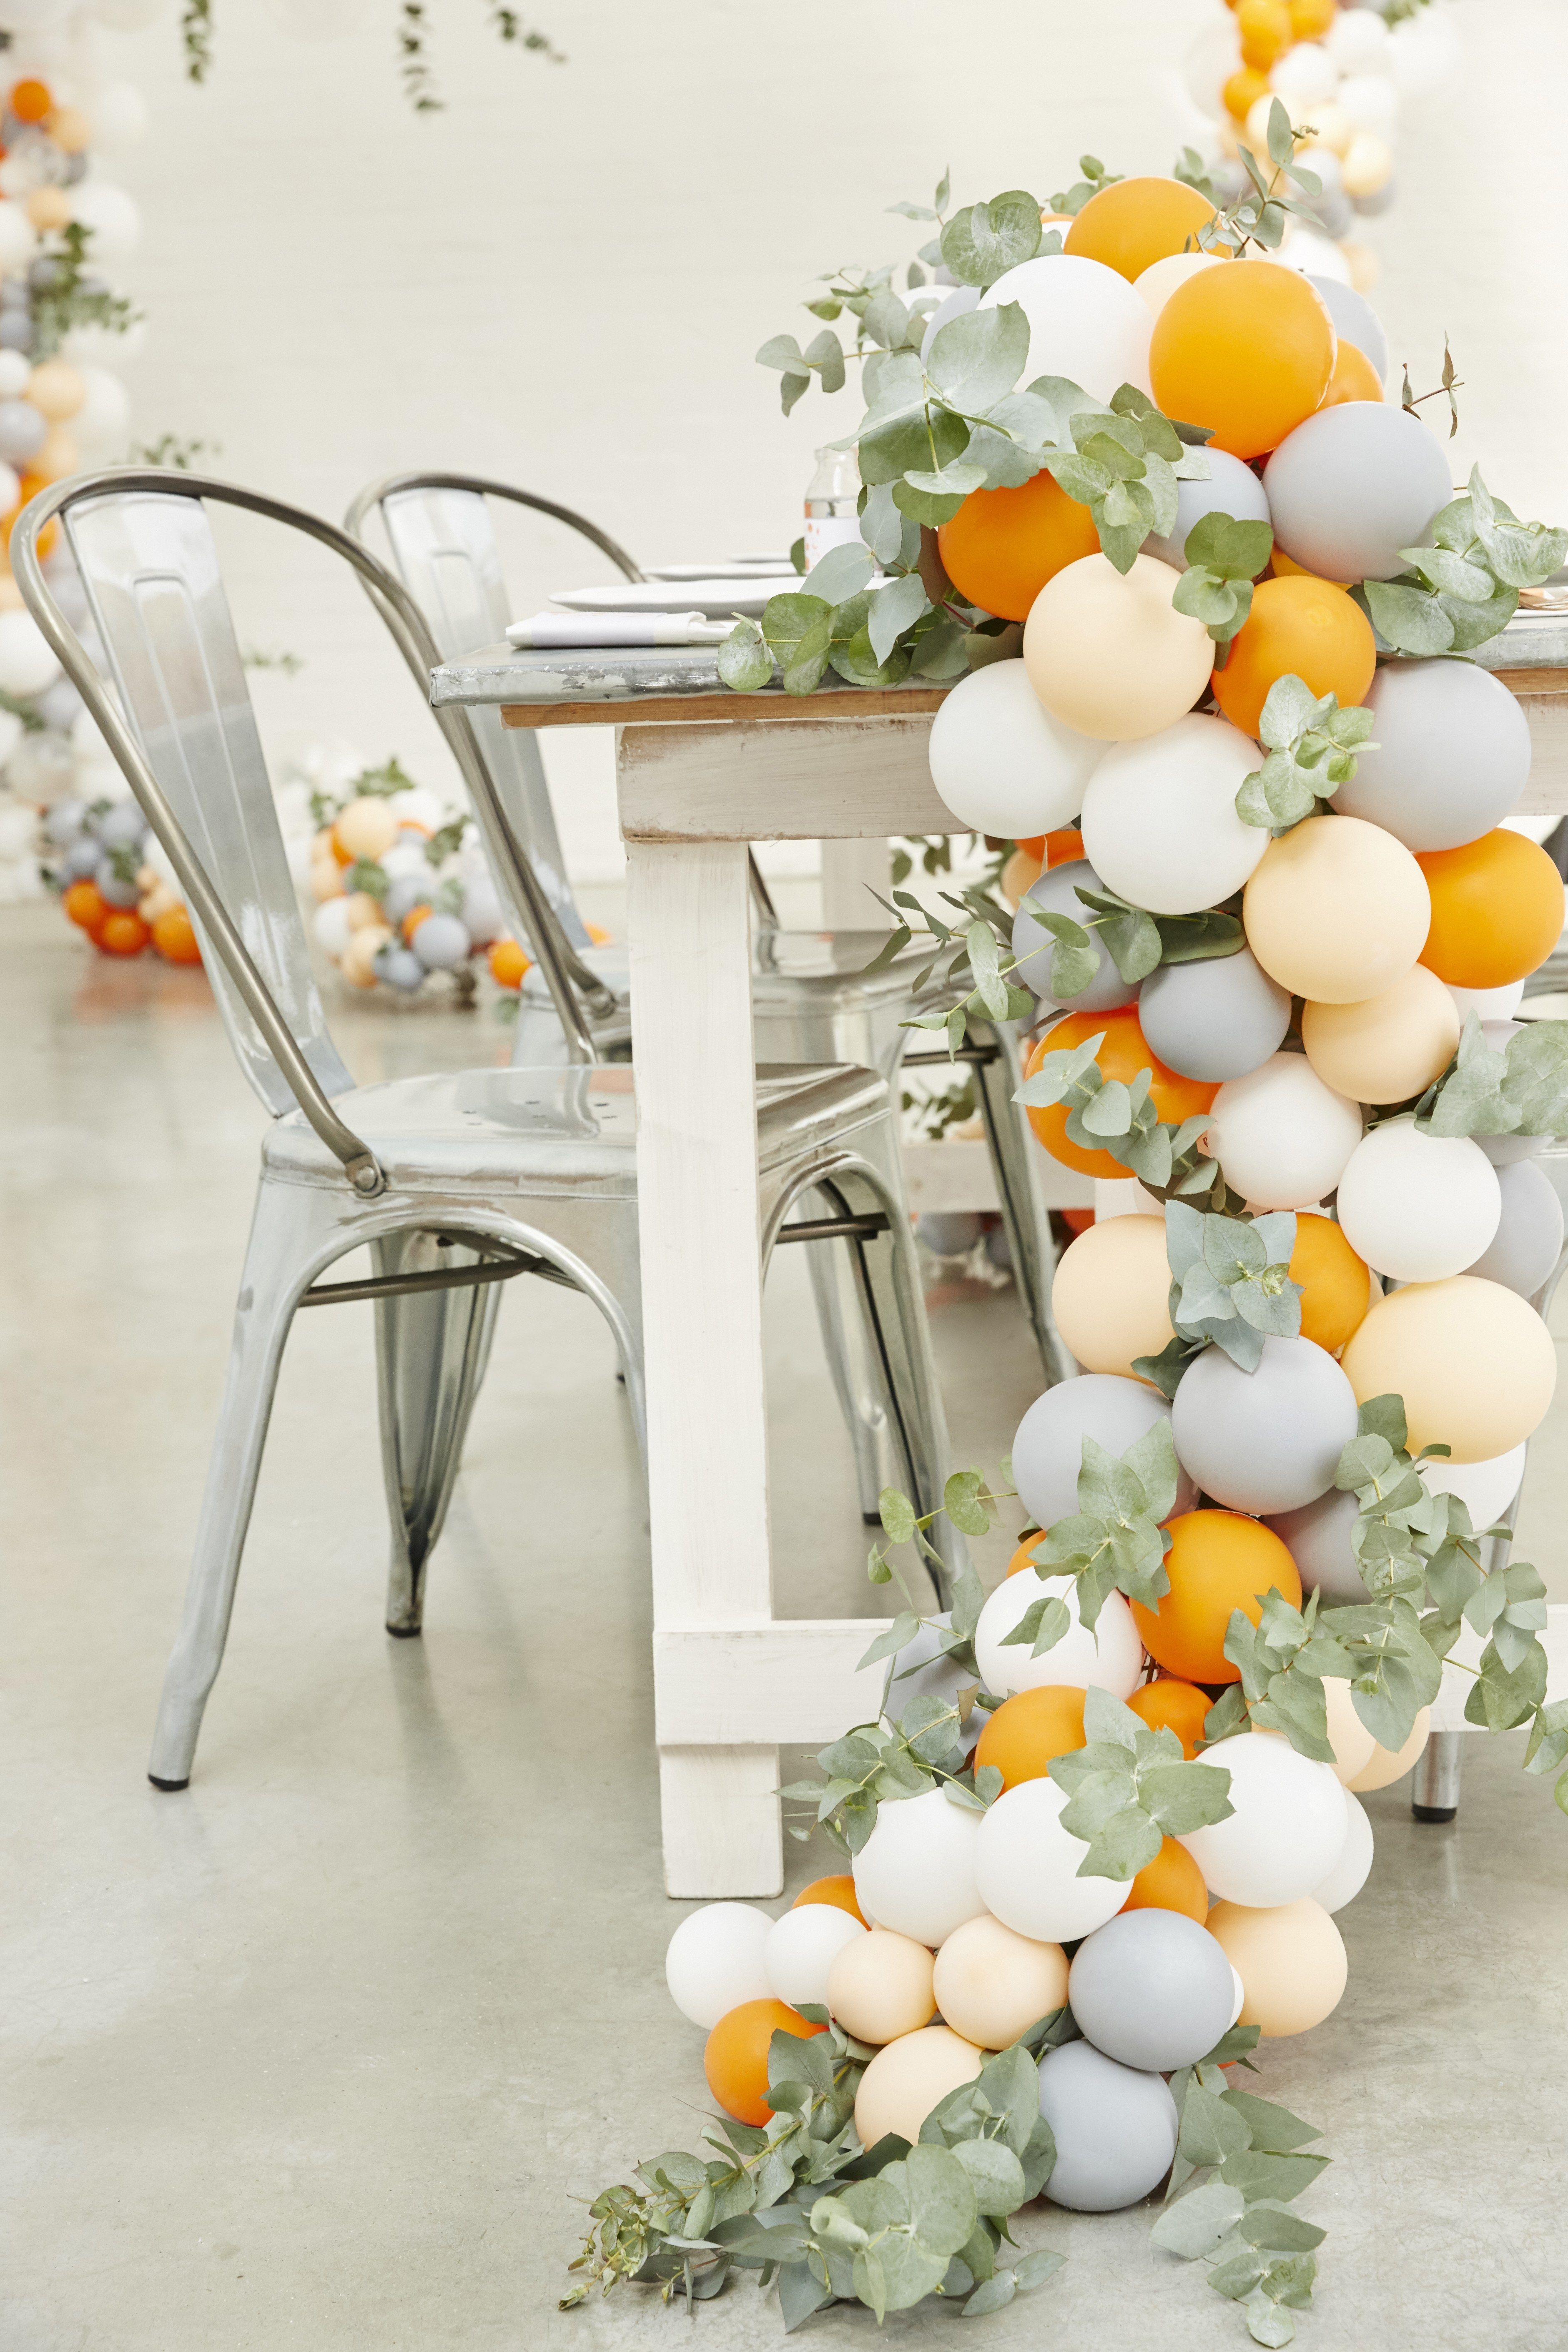 19 Ways To Use Balloons In Your Wedding Decor | Weddings, Garlands ...